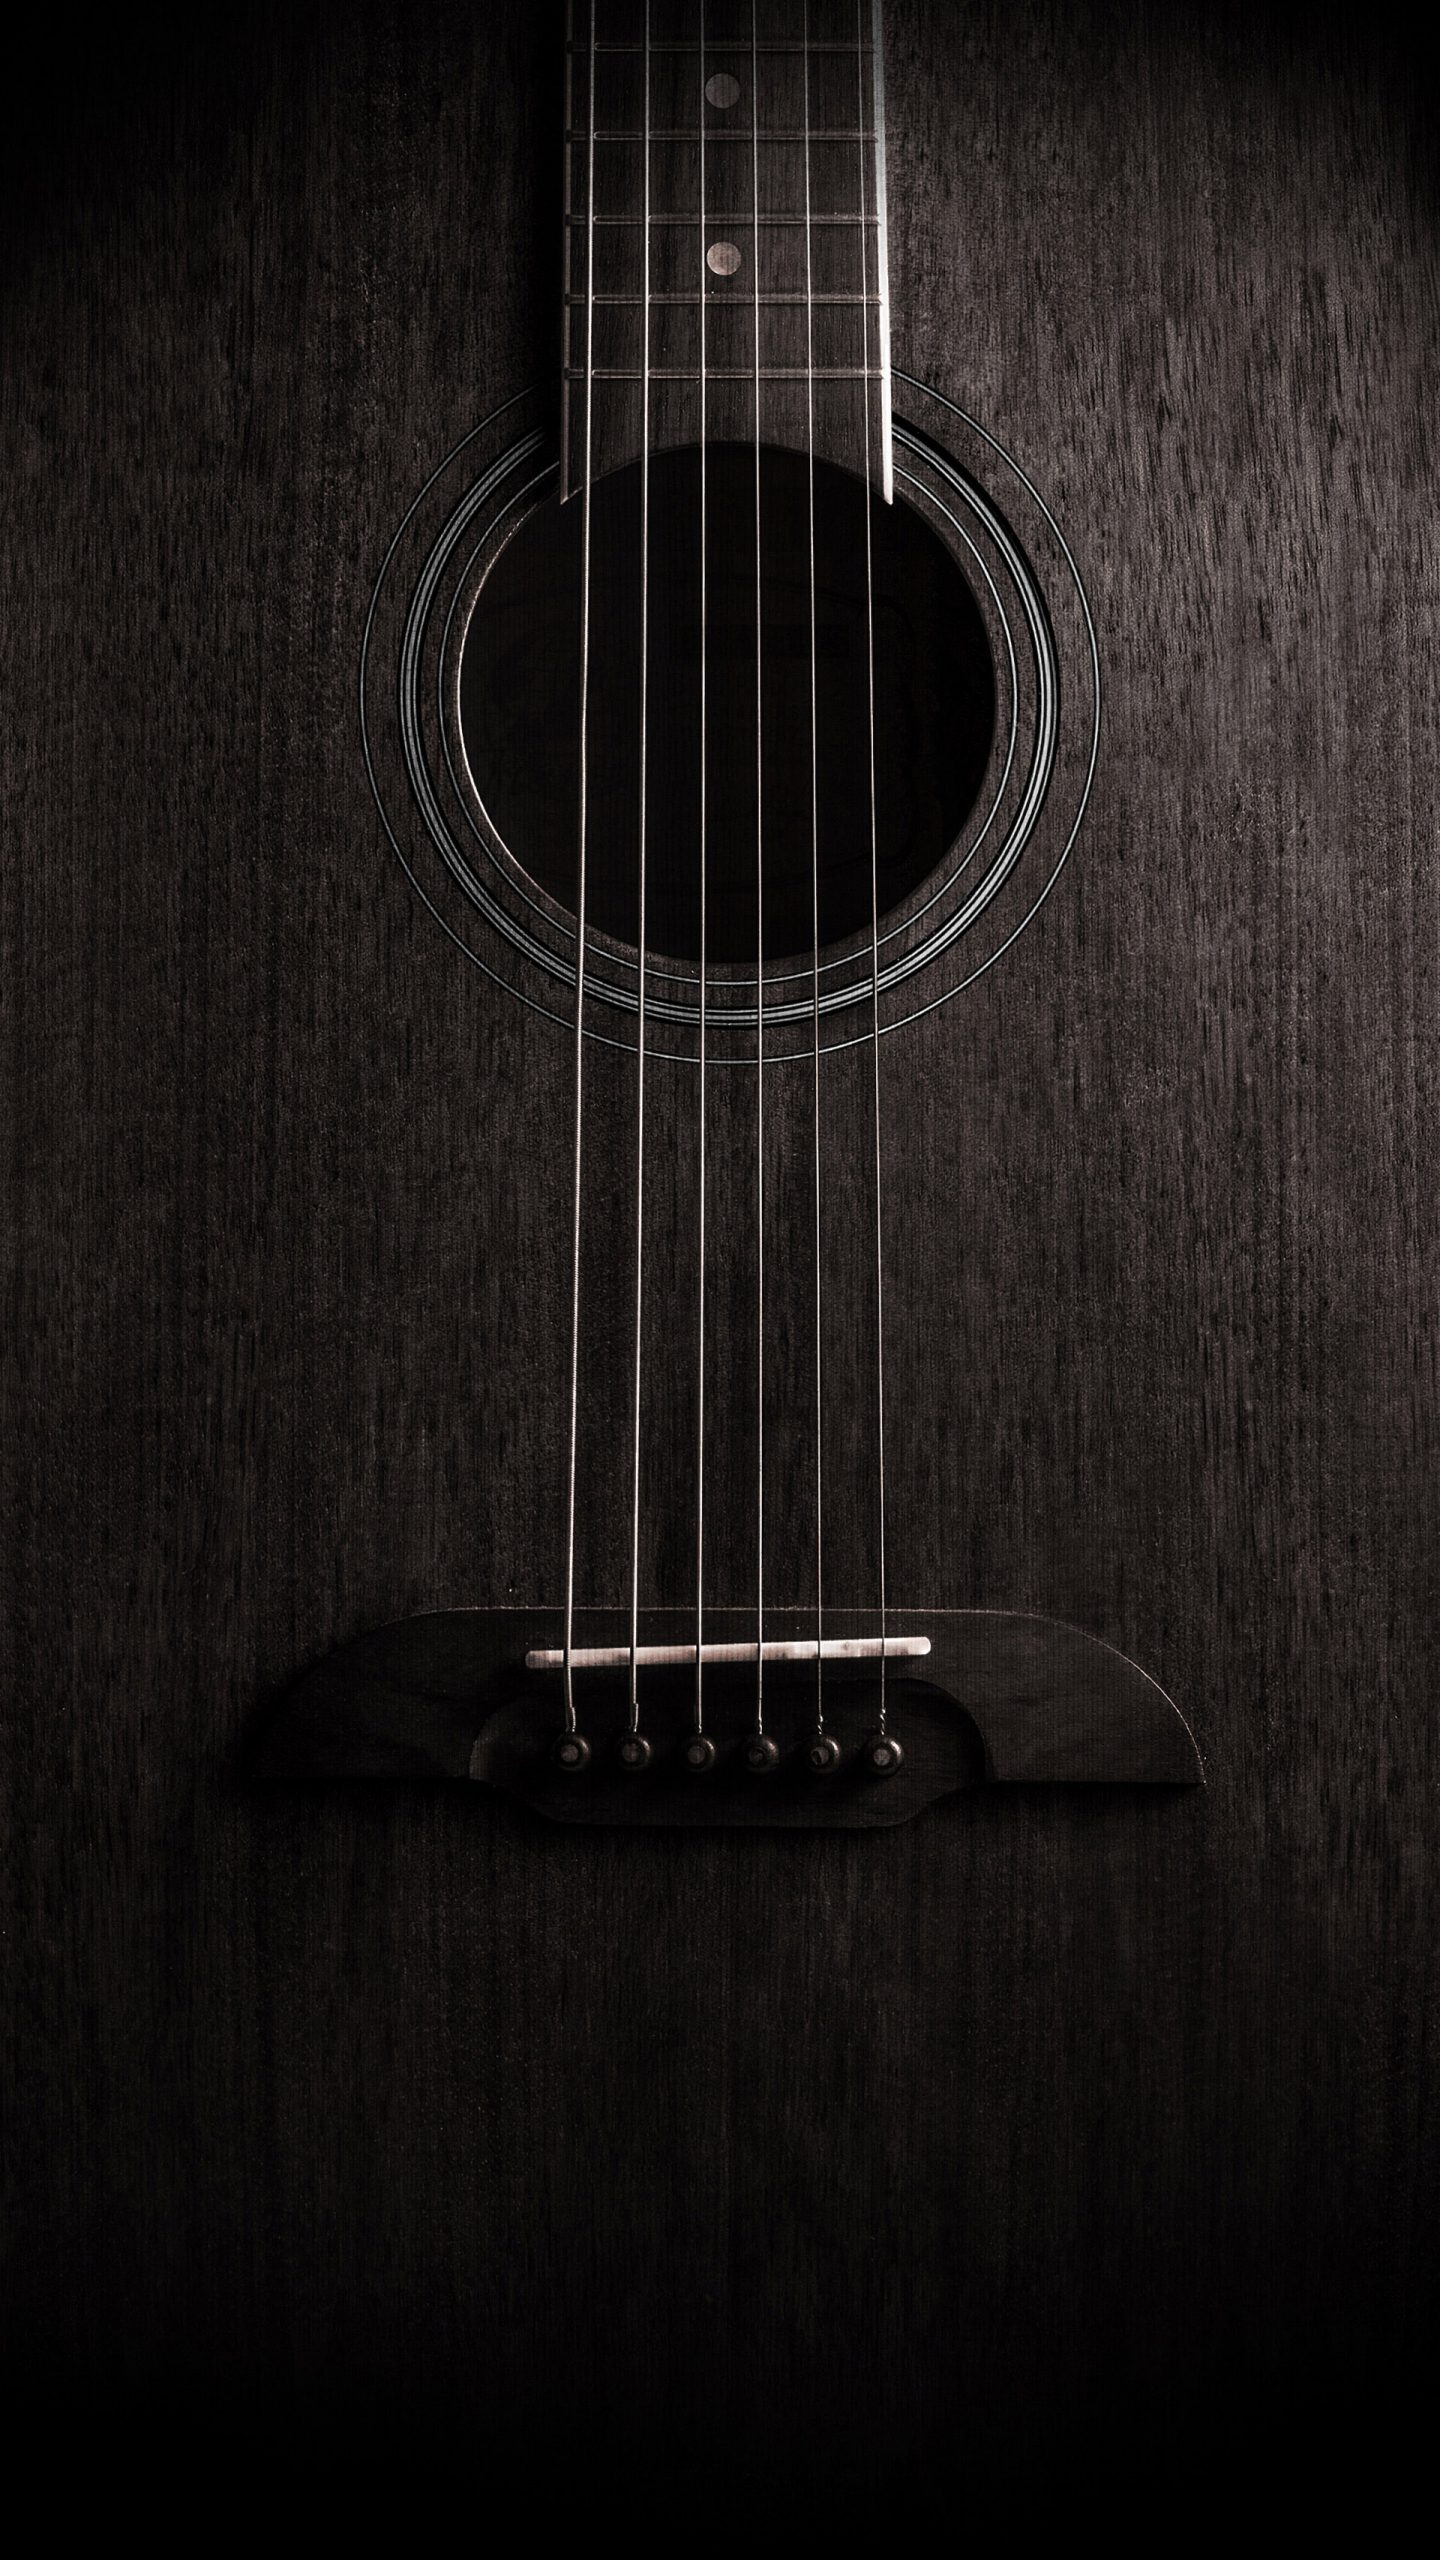 Guitar Wallpaper 4k Posted By Zoey Simpson